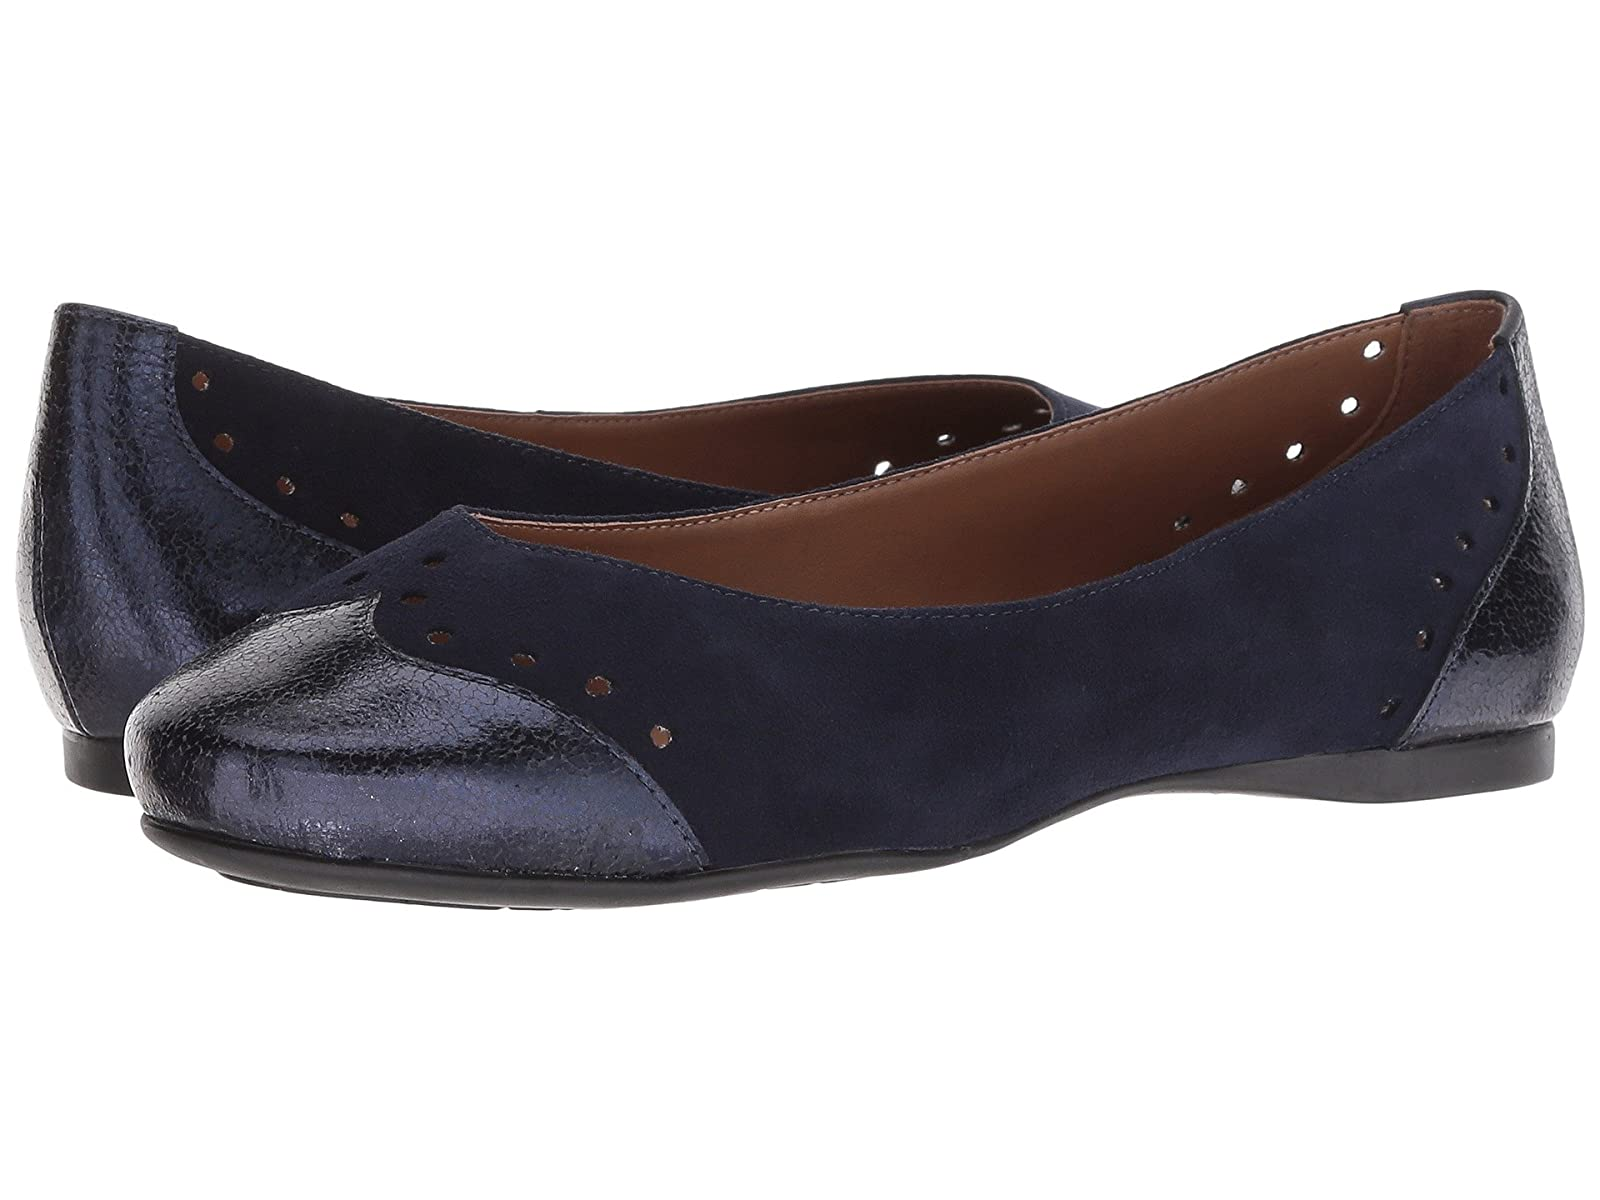 French Sole Civil FlatAtmospheric grades have affordable shoes